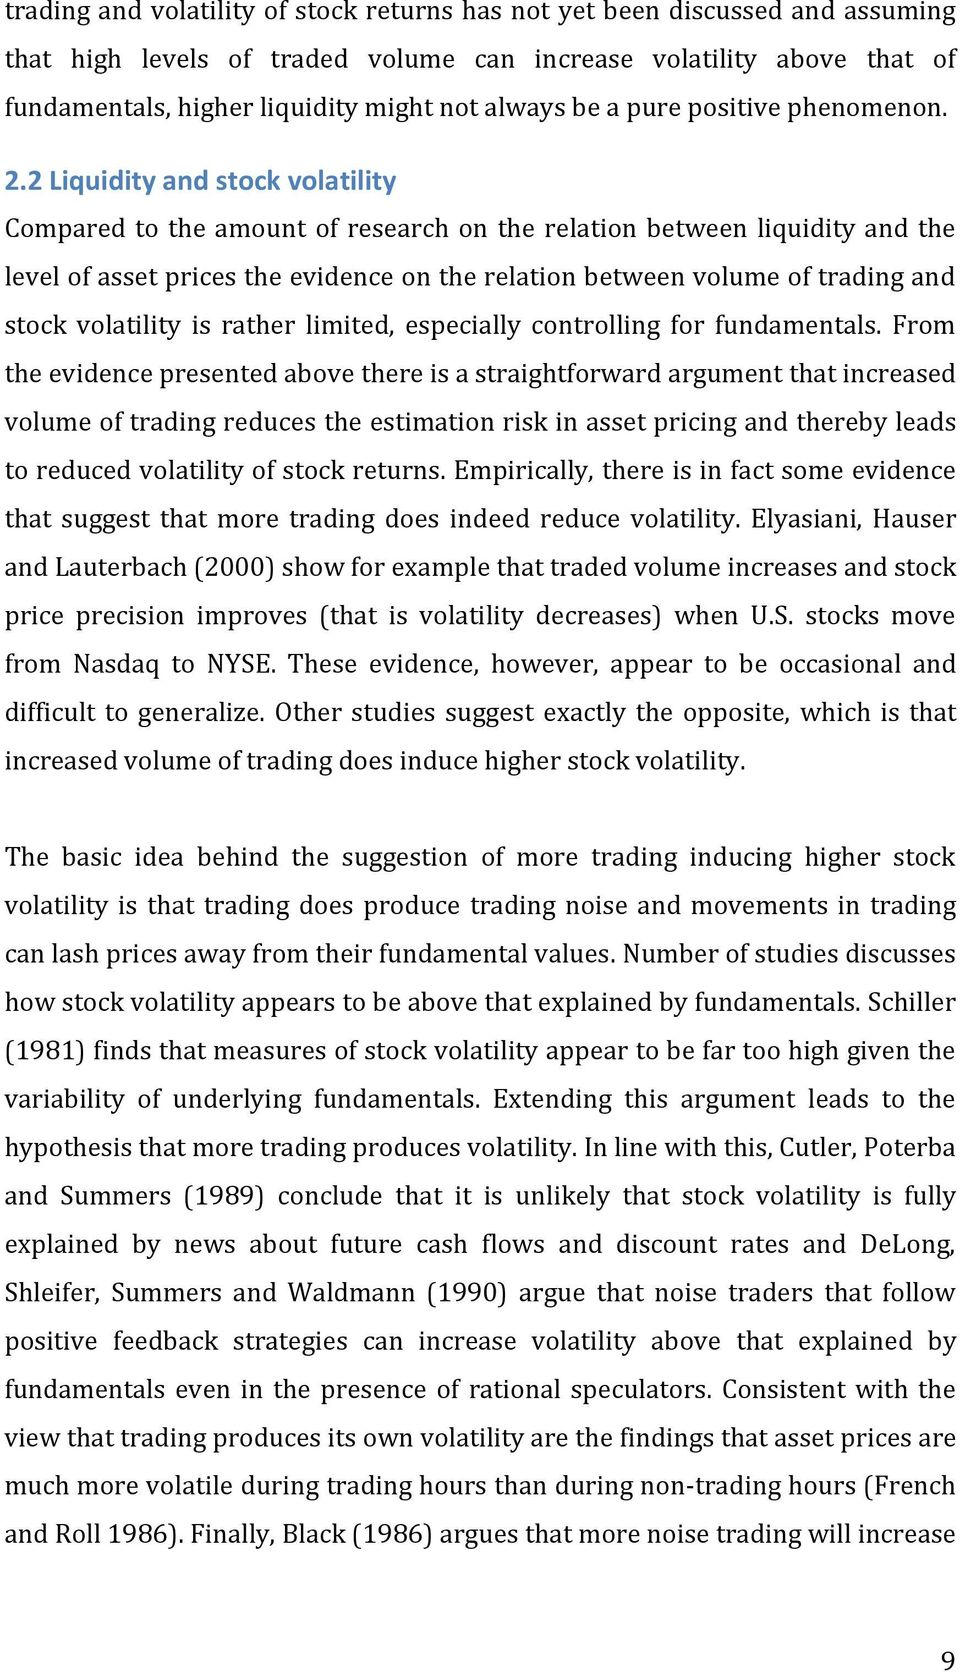 2 Liquidity and stock volatility Compared to the amount of research on the relation between liquidity and the level of asset prices the evidence on the relation between volume of trading and stock